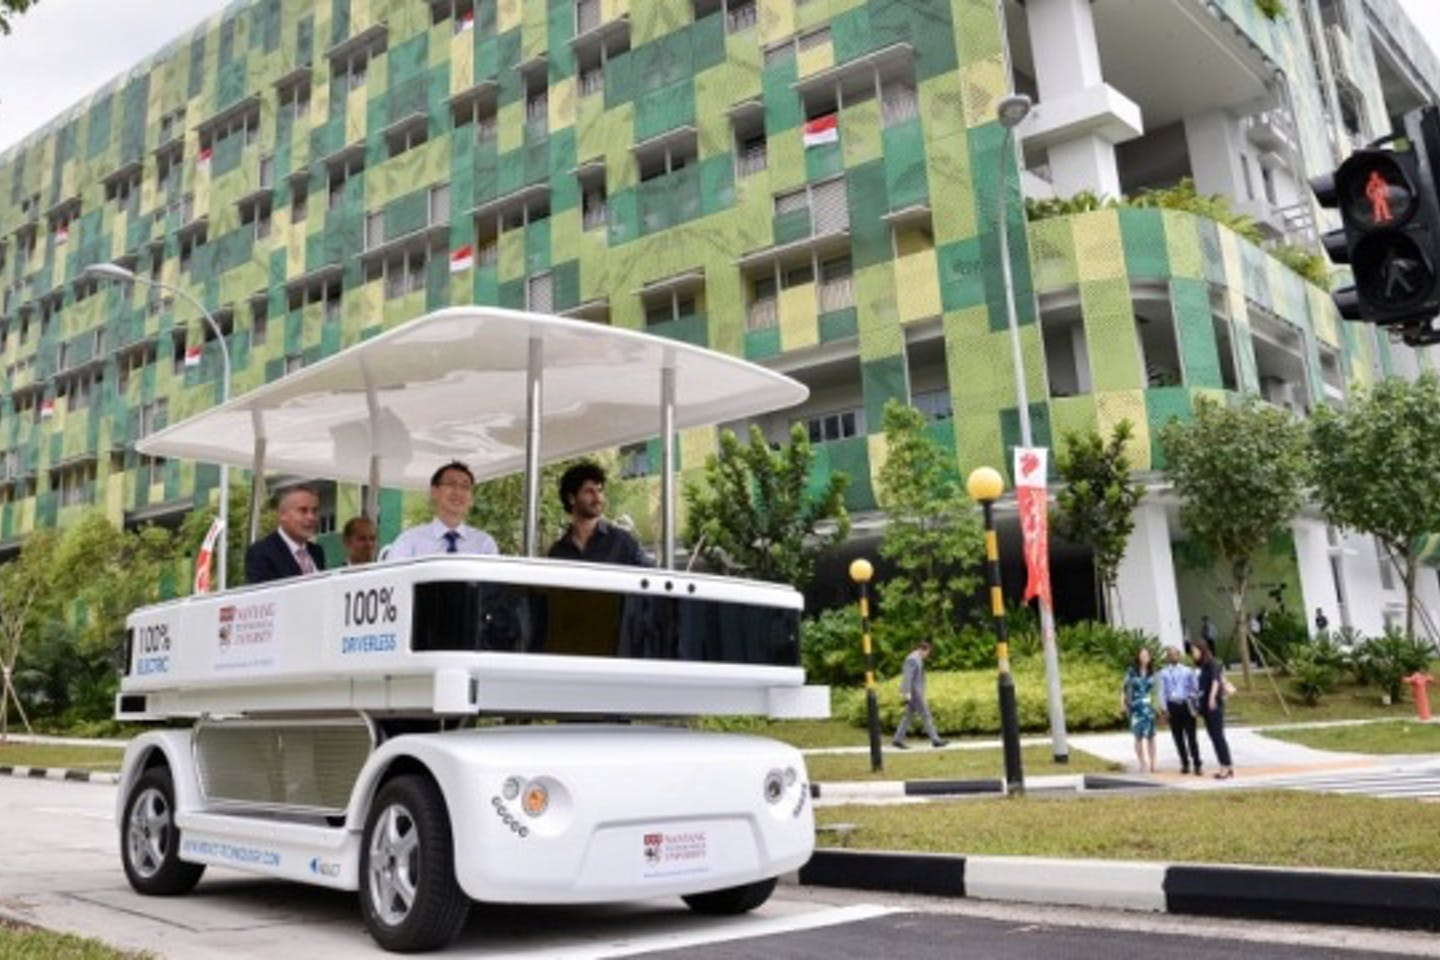 driverless in spore